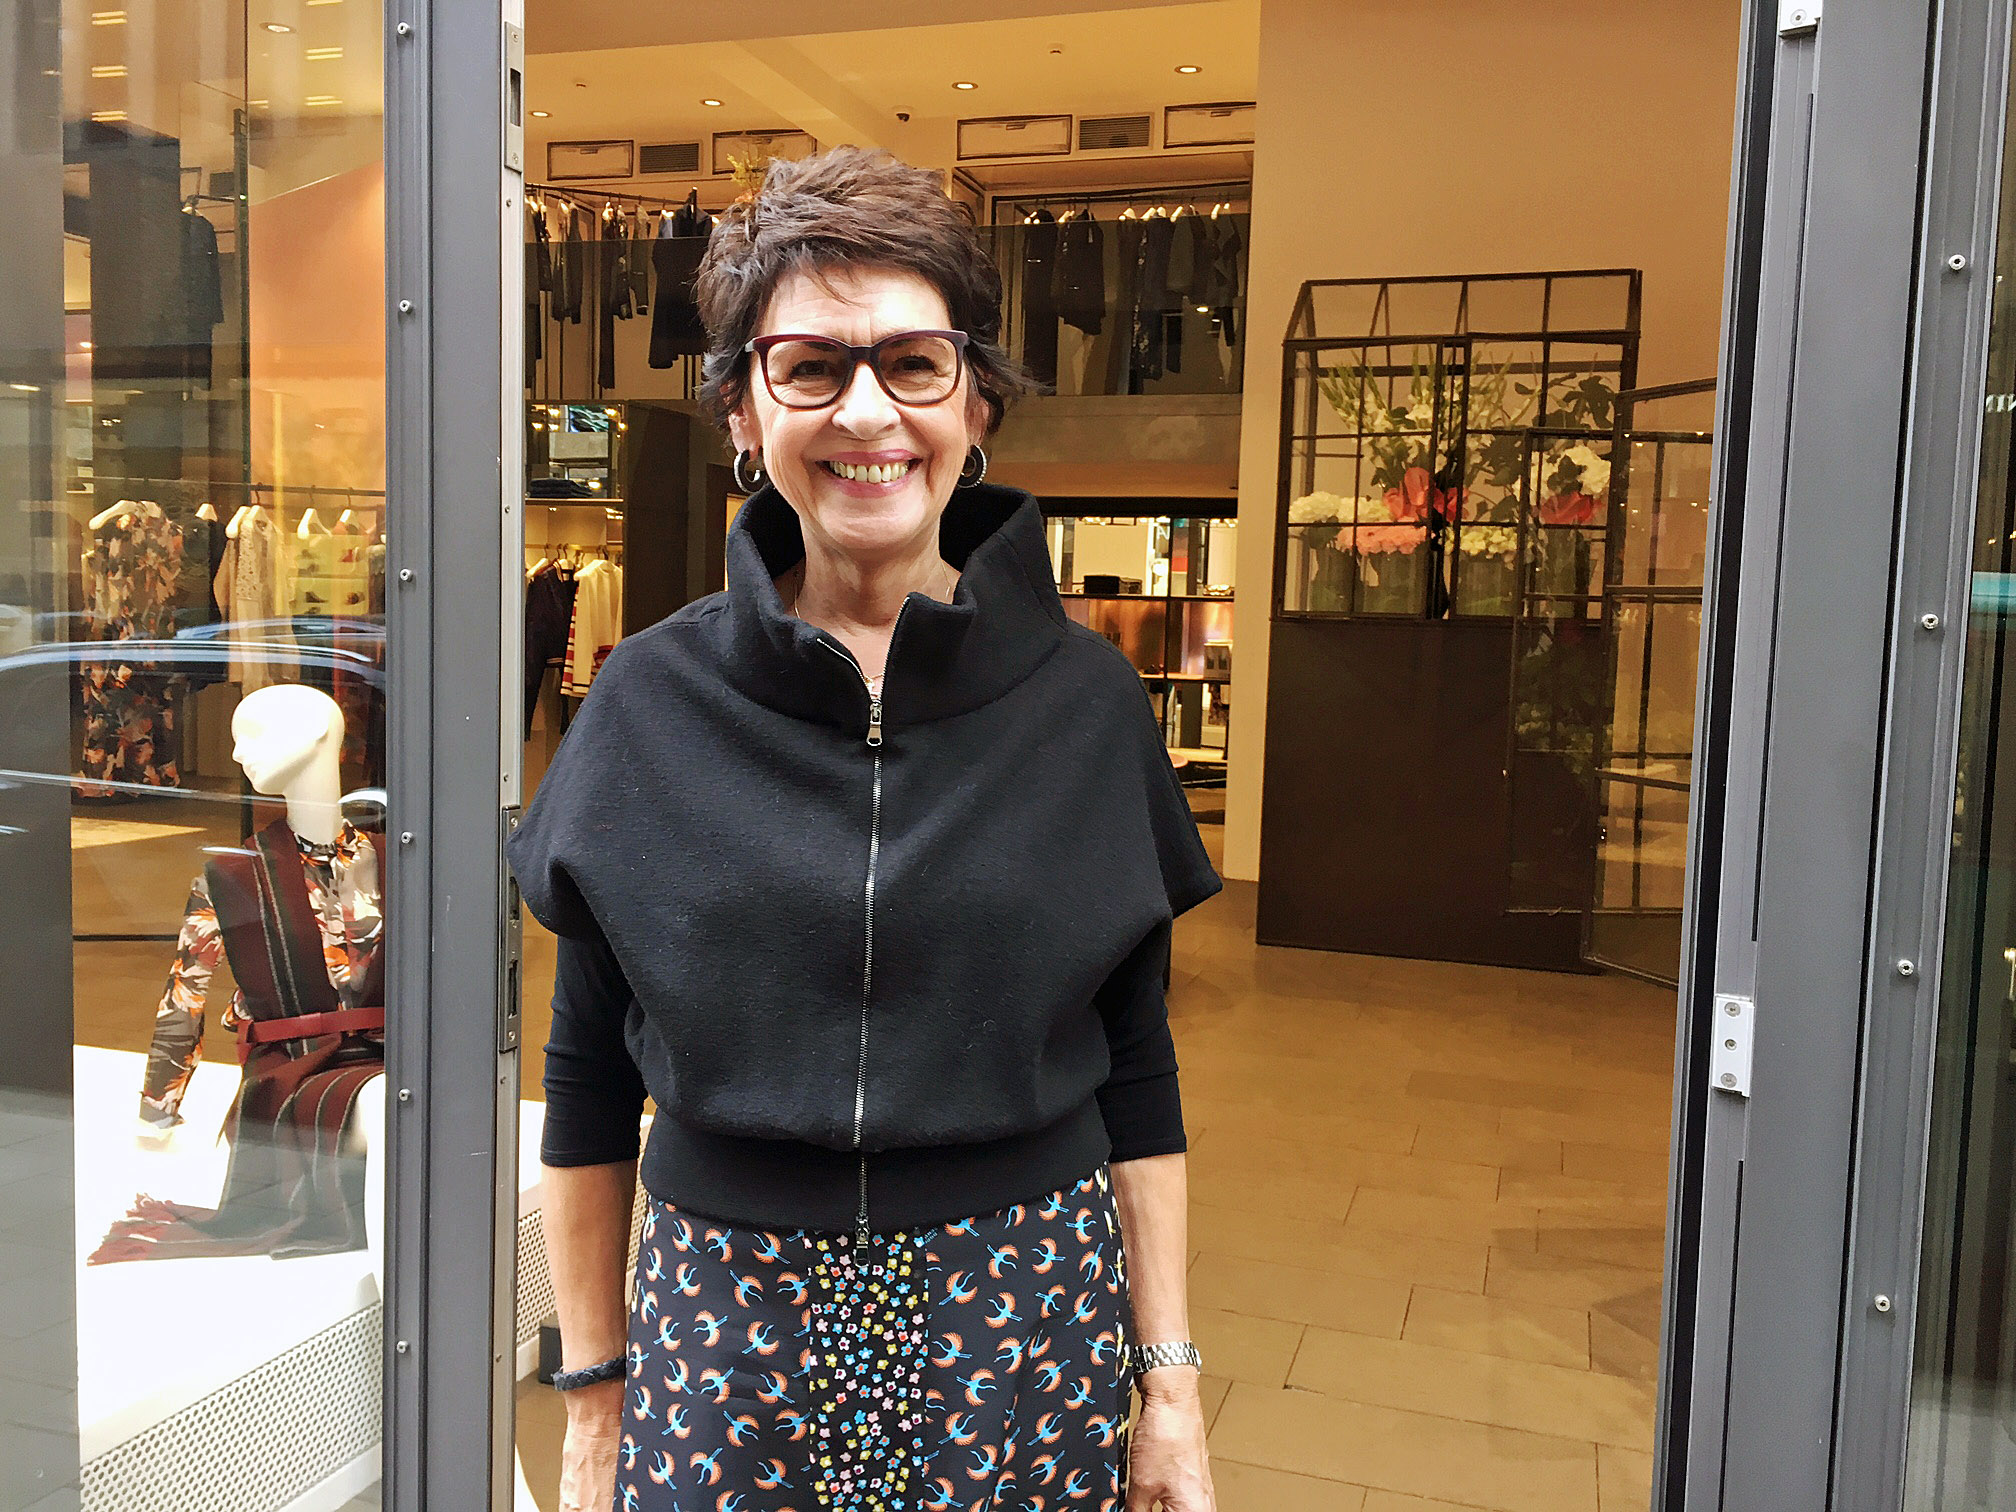 dorothee schumacher streetstyle d sseldorf wie kombiniert man lange r cke und kleider. Black Bedroom Furniture Sets. Home Design Ideas